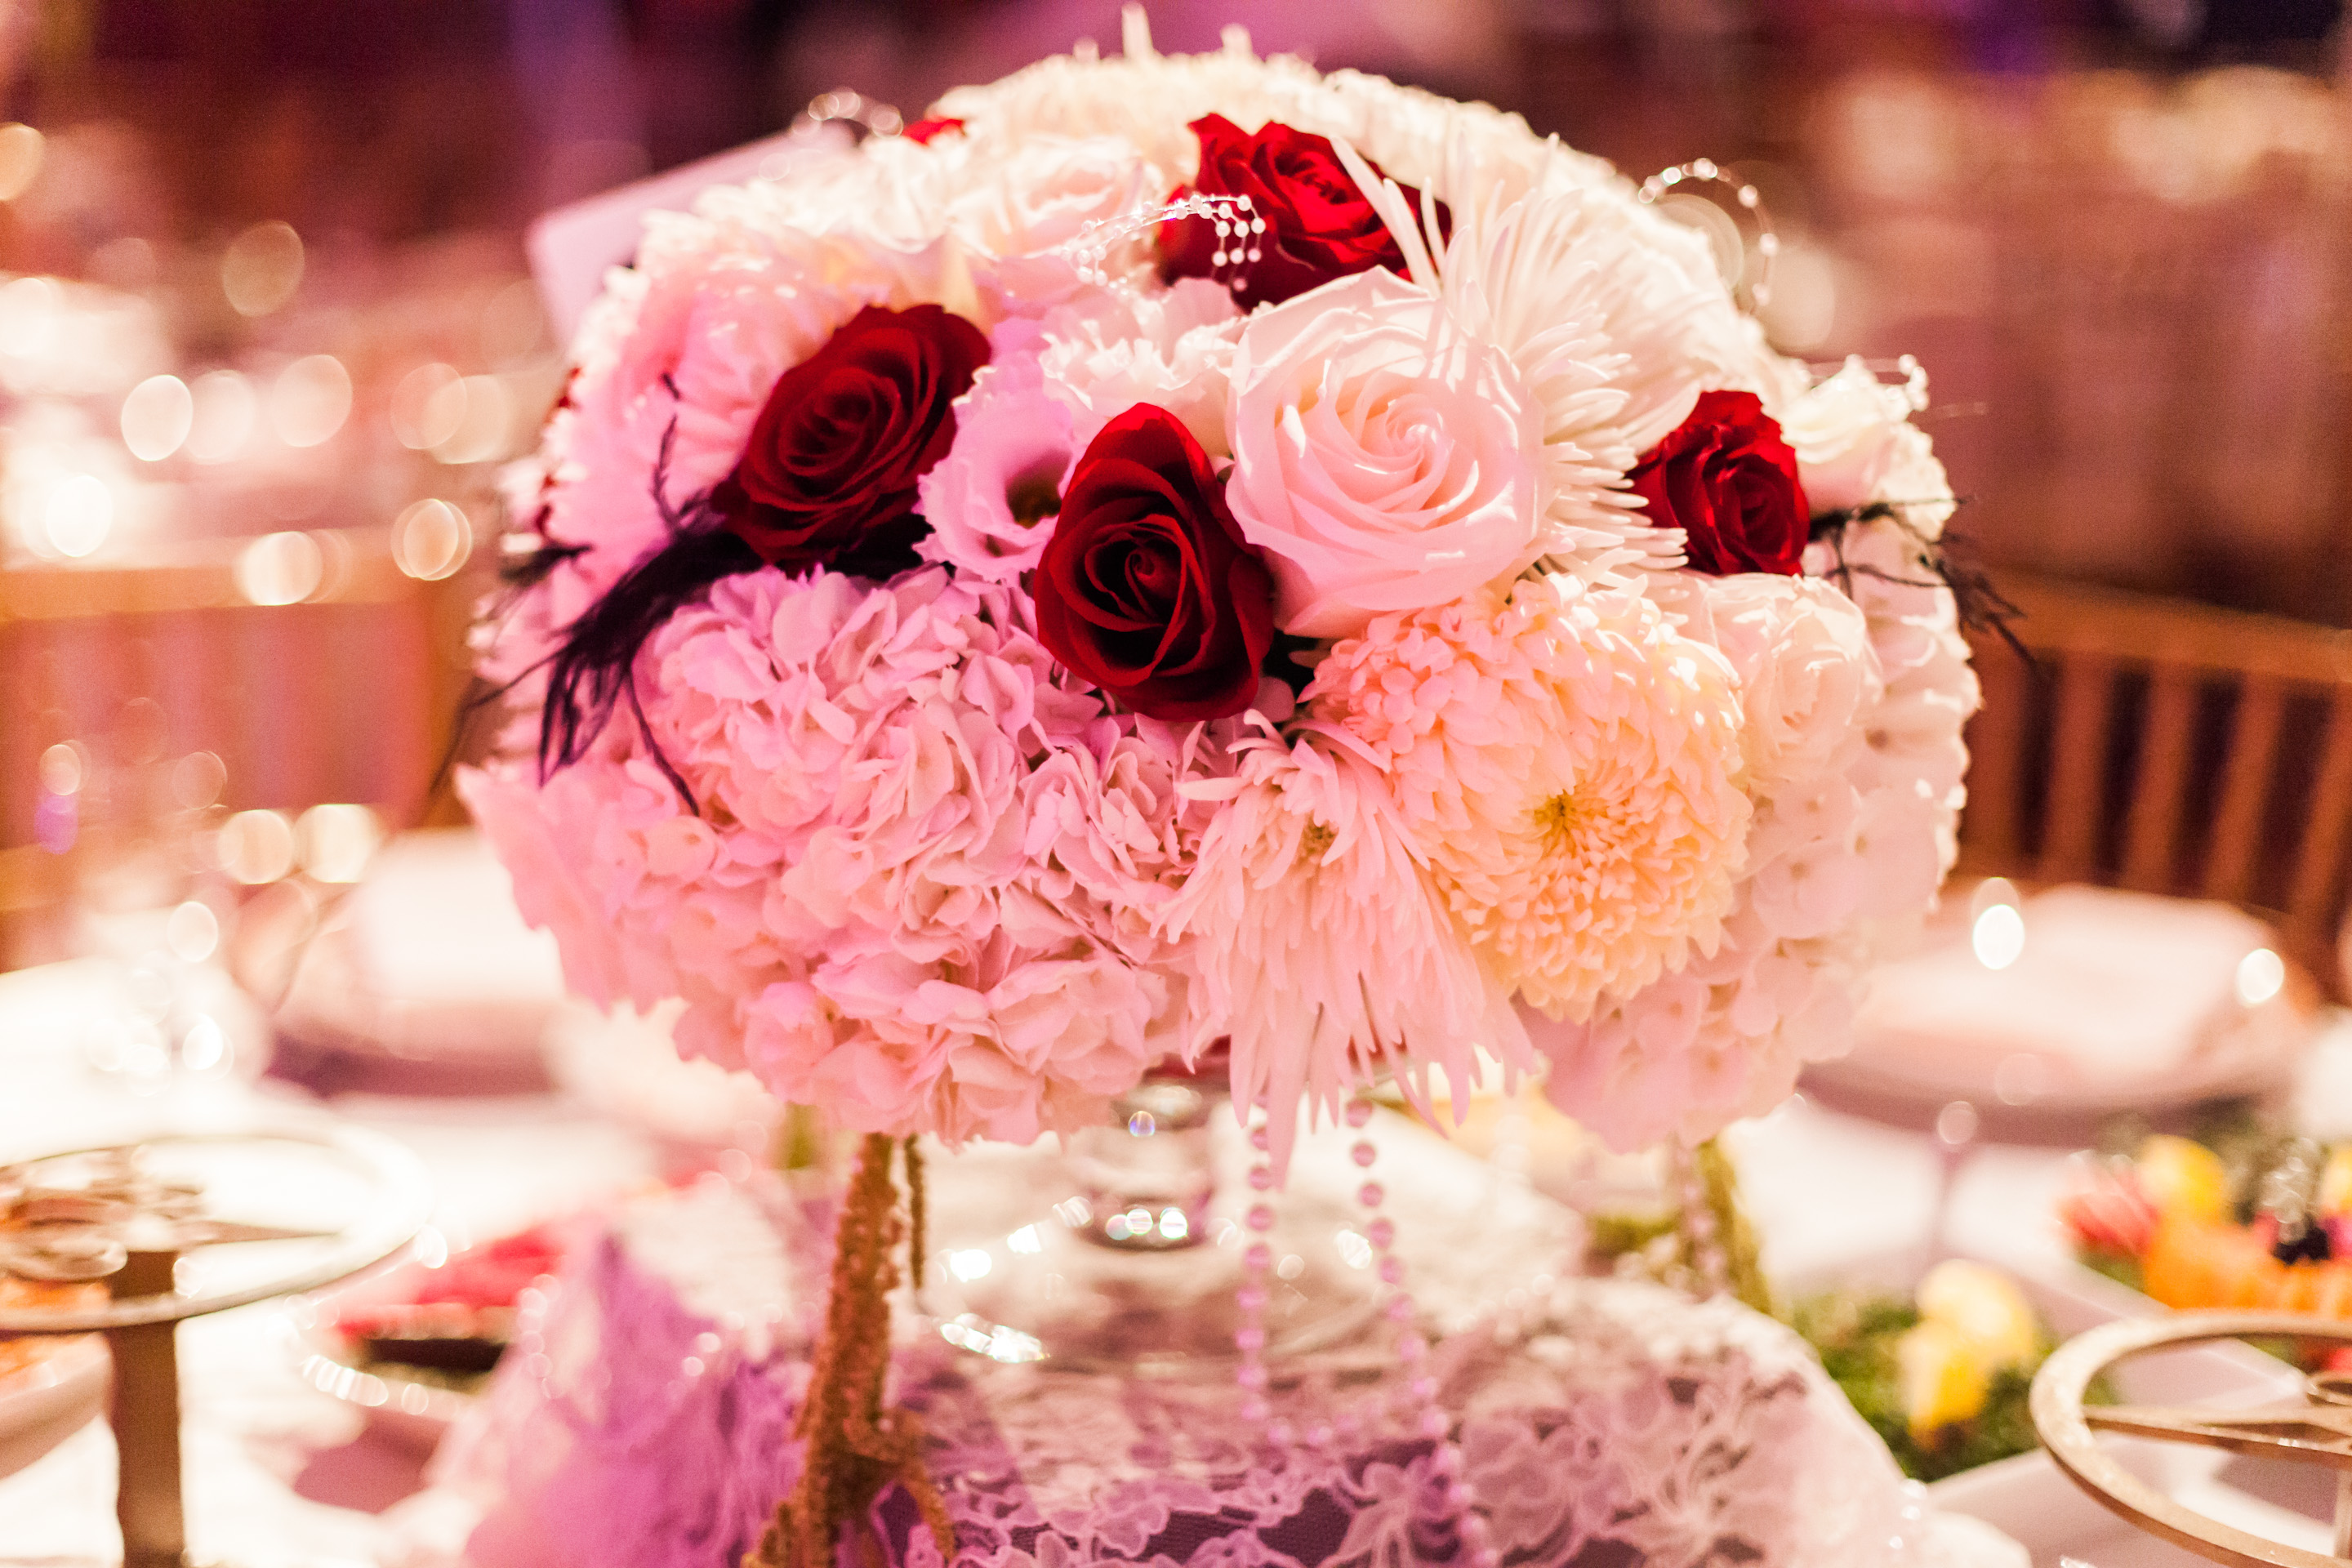 Epic-wedding-in-los-angeles-california-weddings-red-white-reception-centerpiece.original